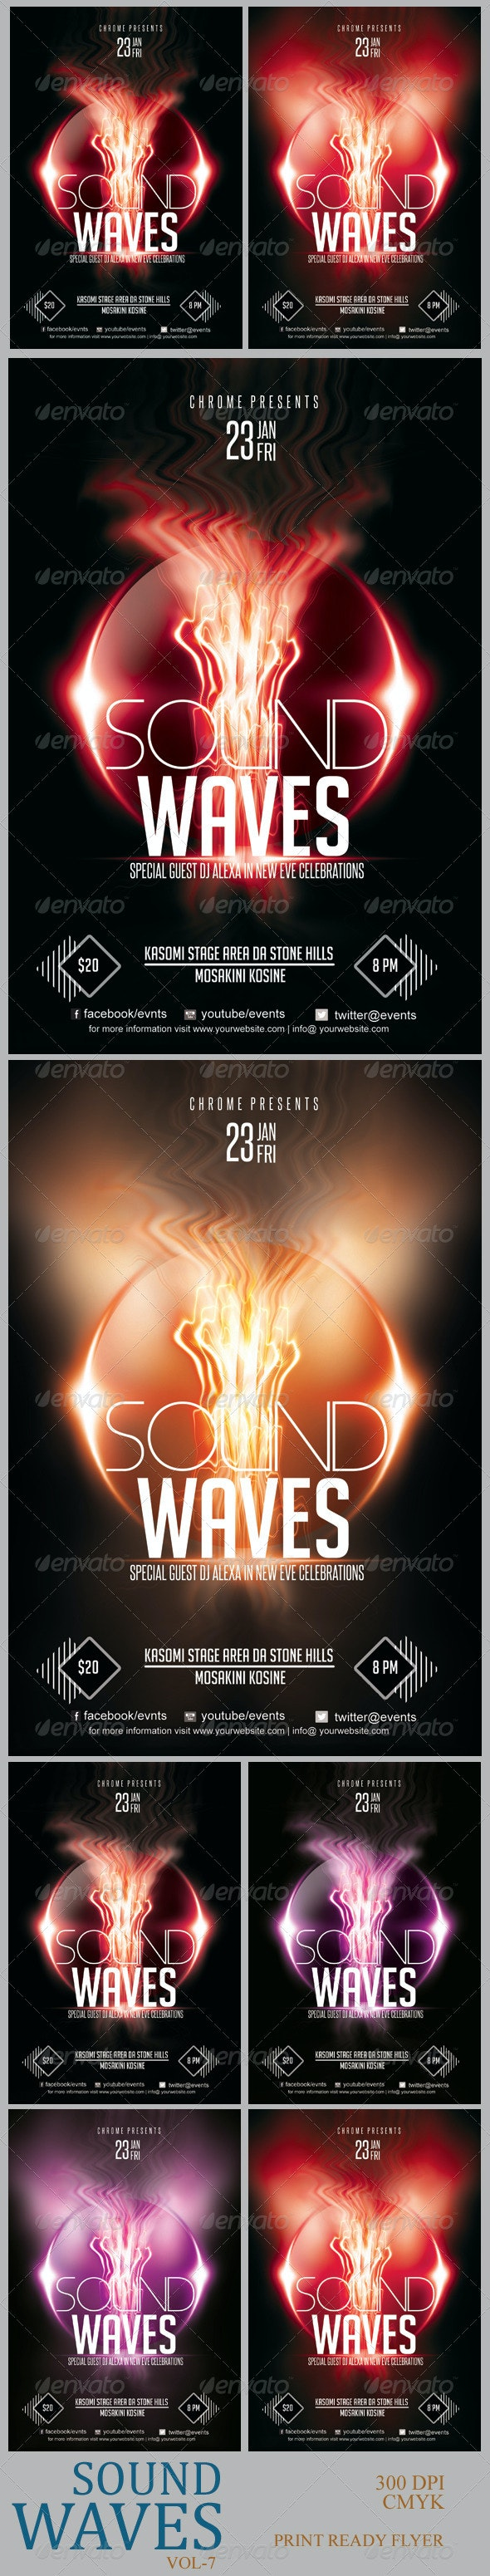 Sound Waves Flyer PSD 7 - Clubs & Parties Events